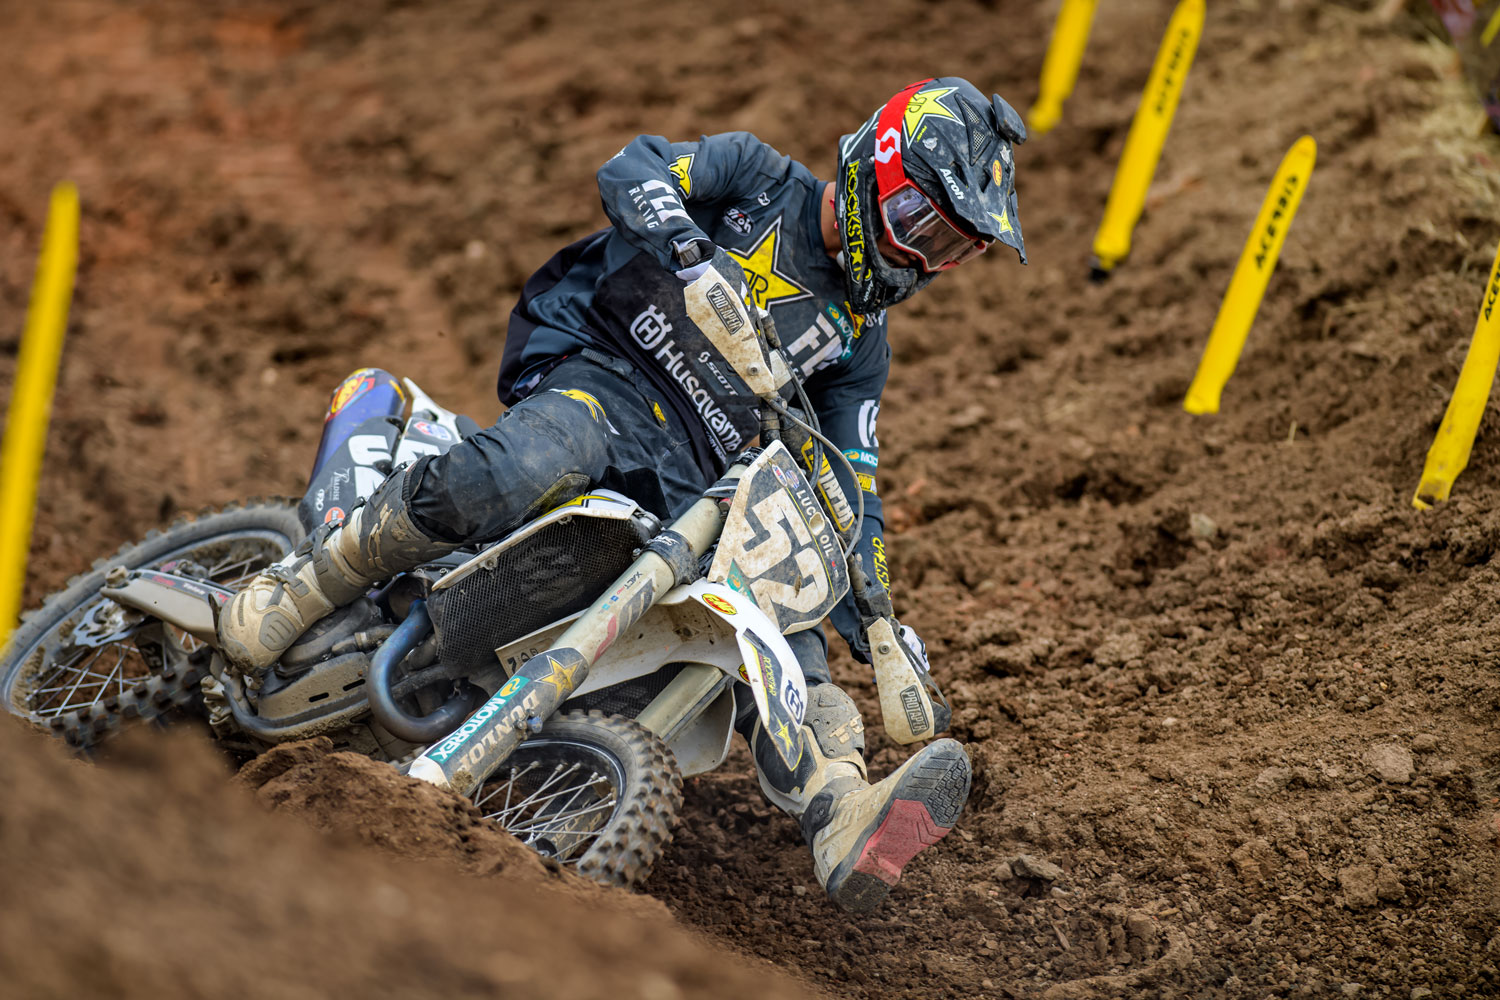 BAILEY_2019_HANGTOWN_MX_web1.jpg